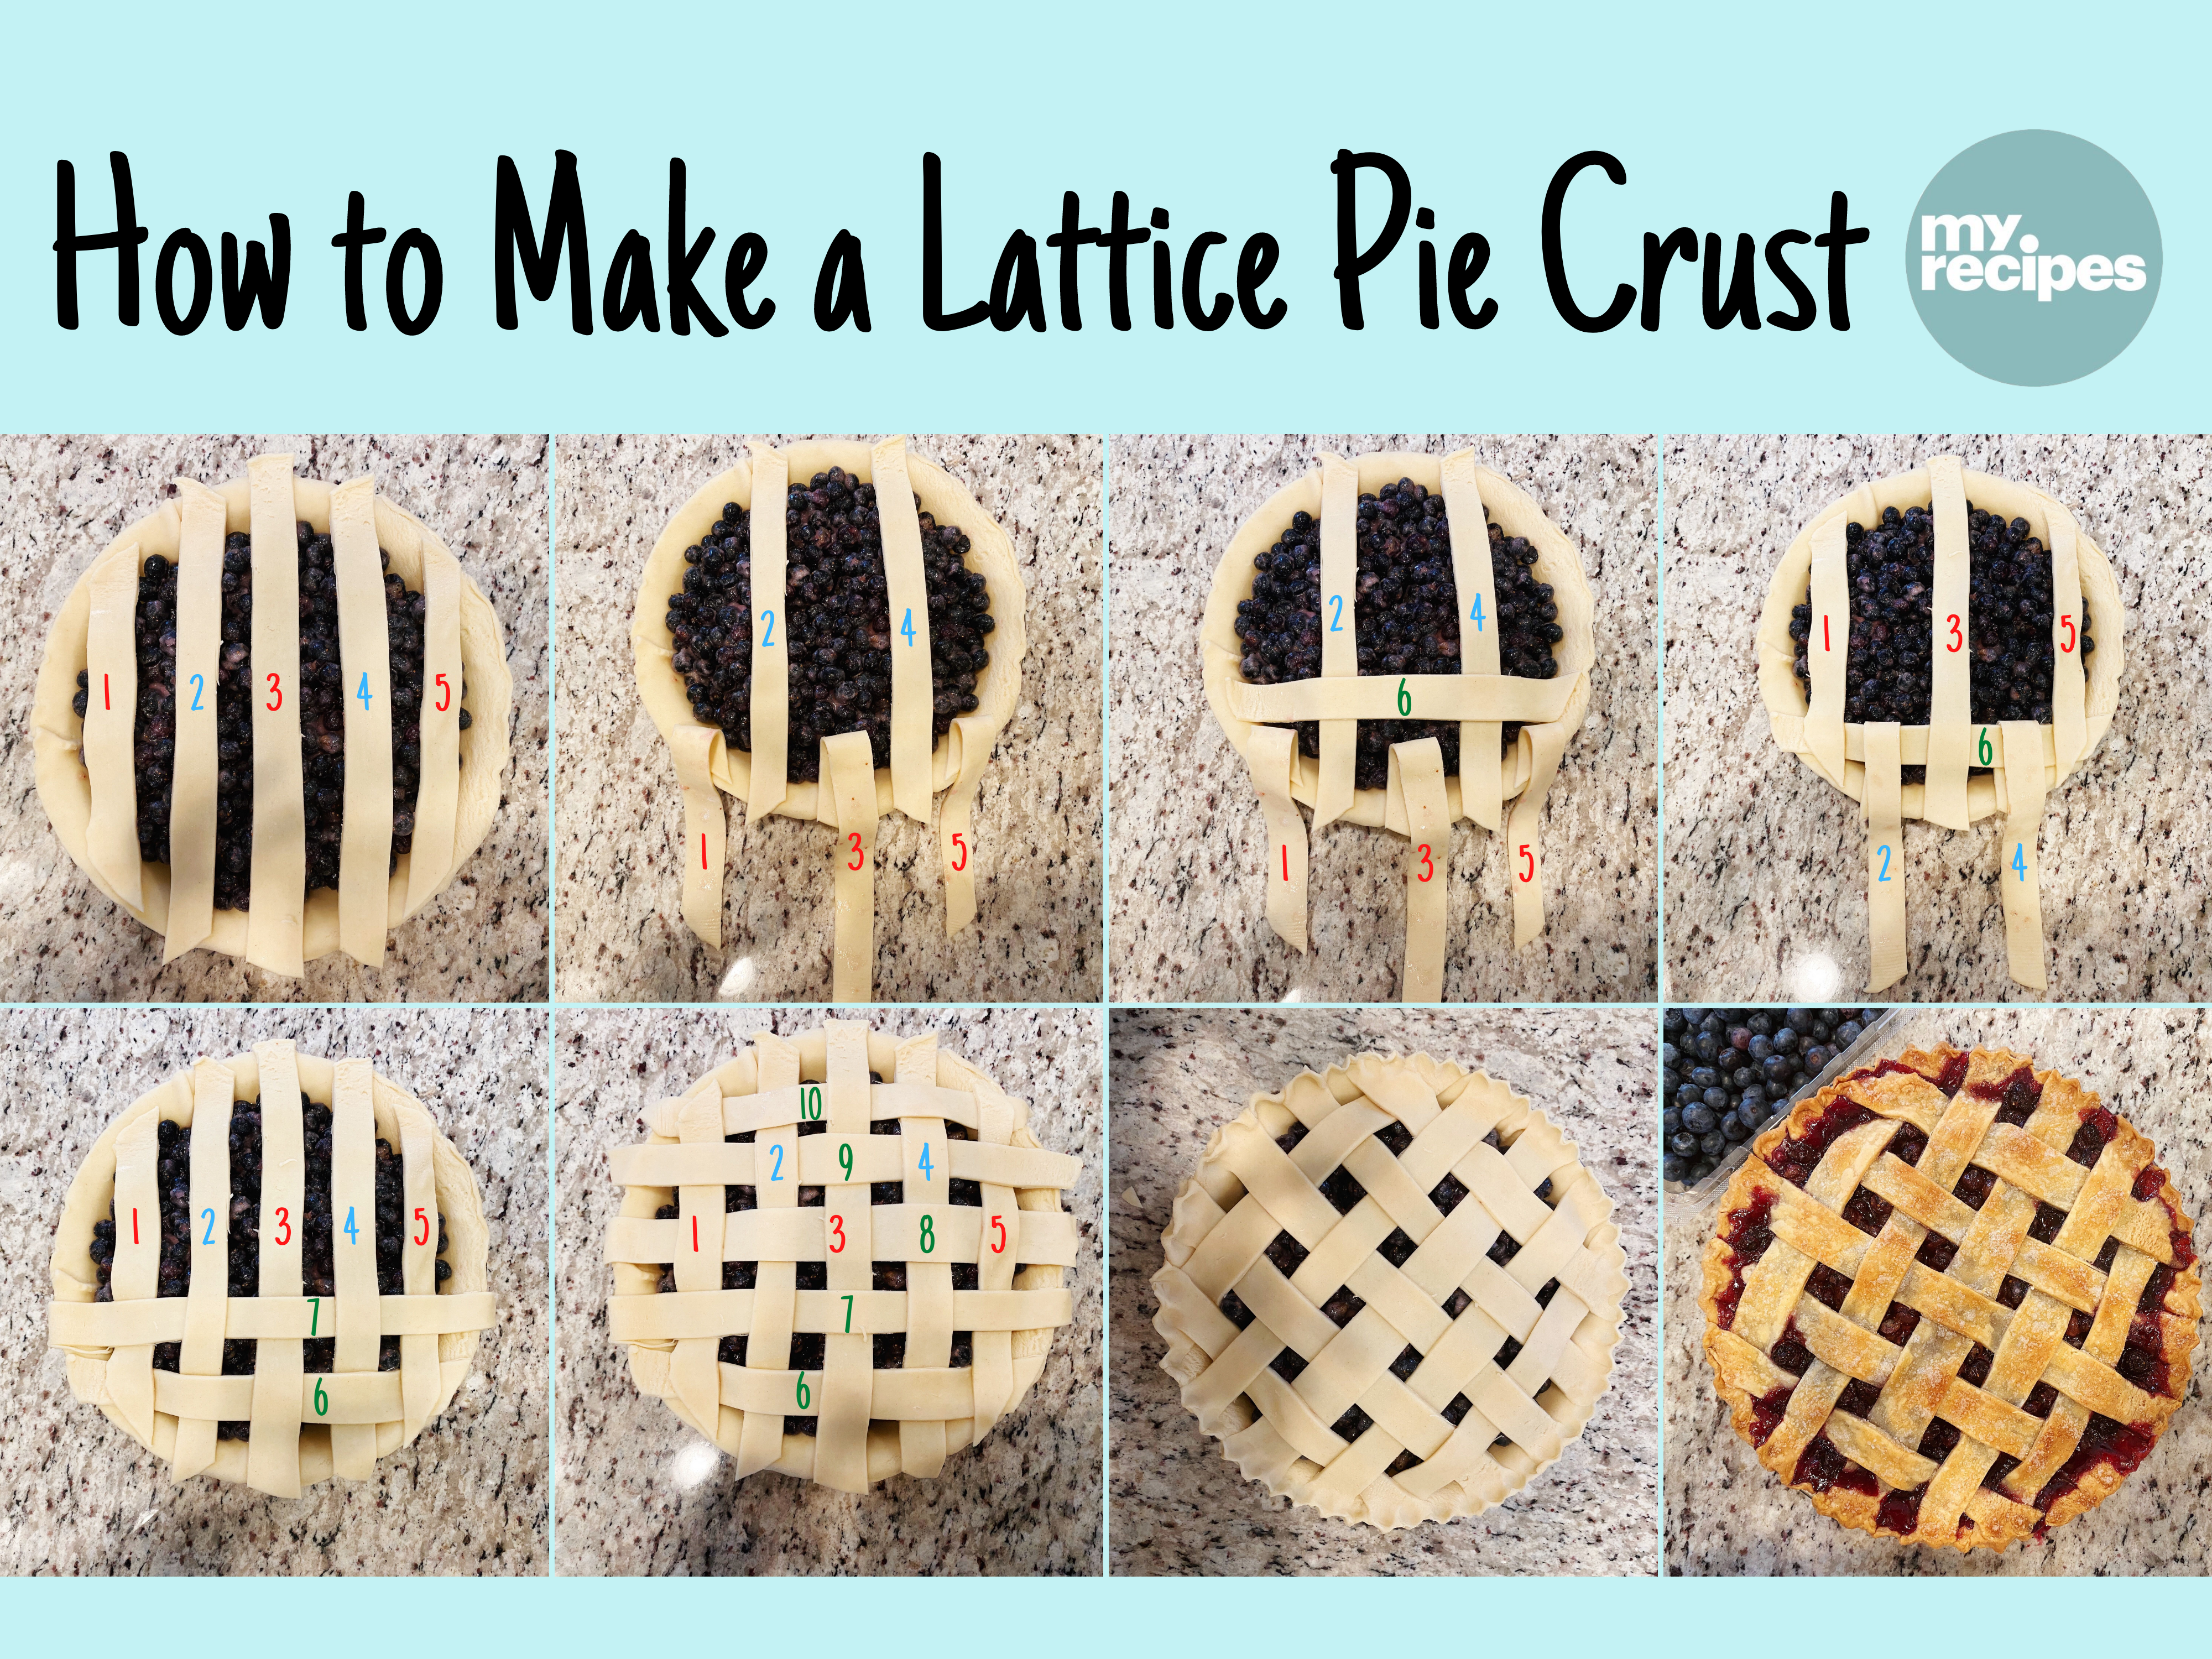 How to Make a Lattice Crust